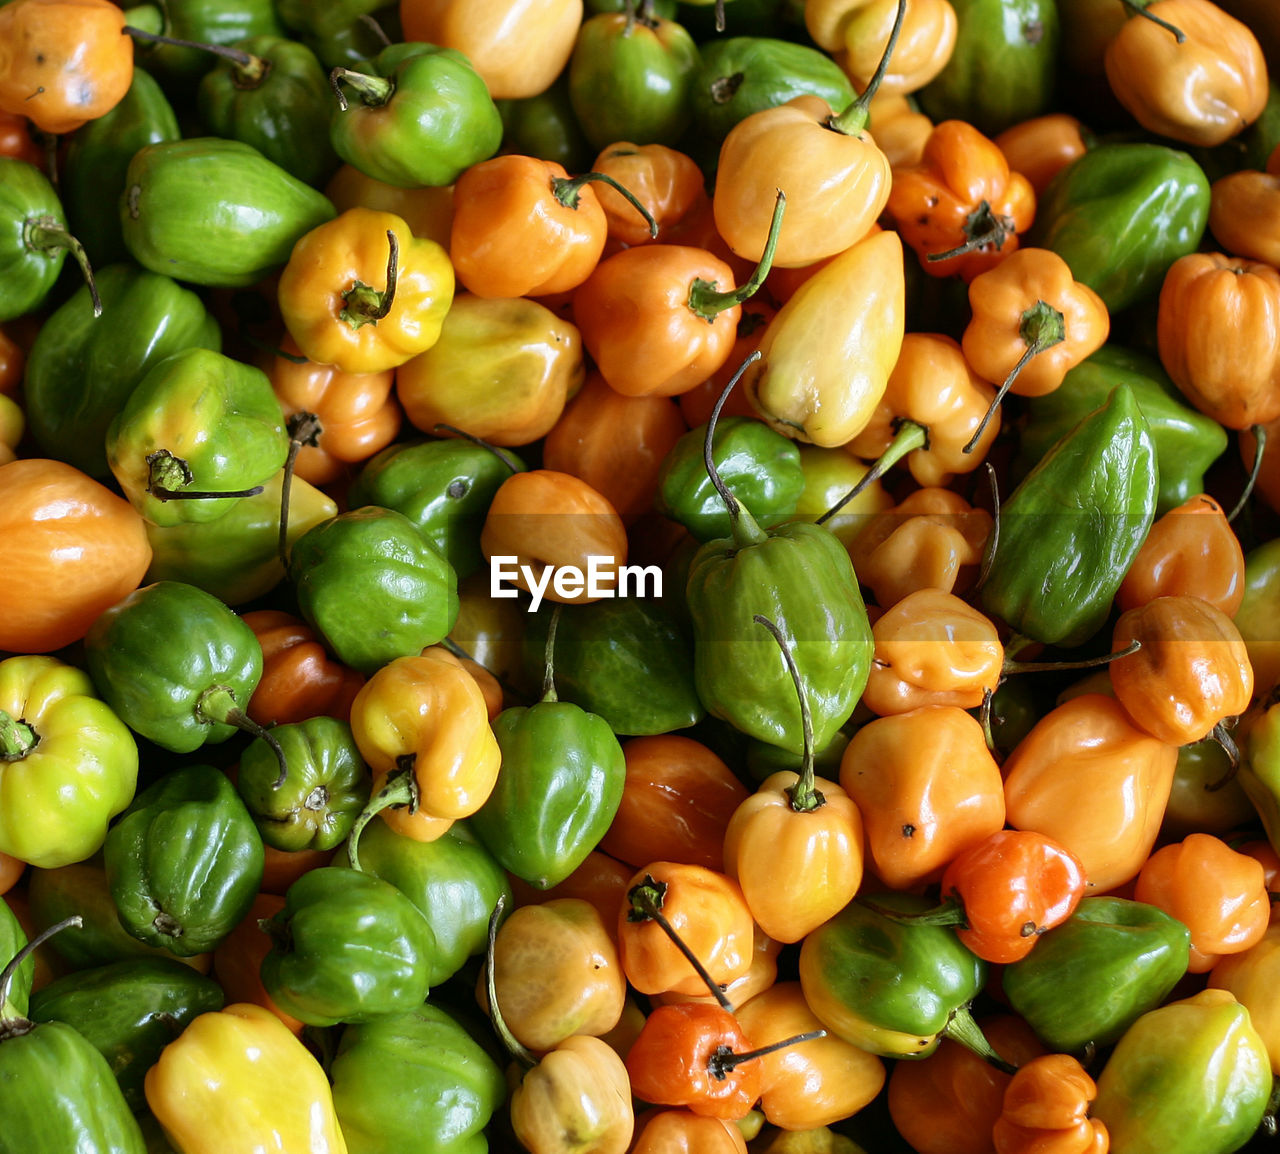 green color, vegetable, healthy eating, full frame, food and drink, food, backgrounds, abundance, bell pepper, freshness, for sale, no people, retail, variation, red bell pepper, large group of objects, close-up, market, day, indoors